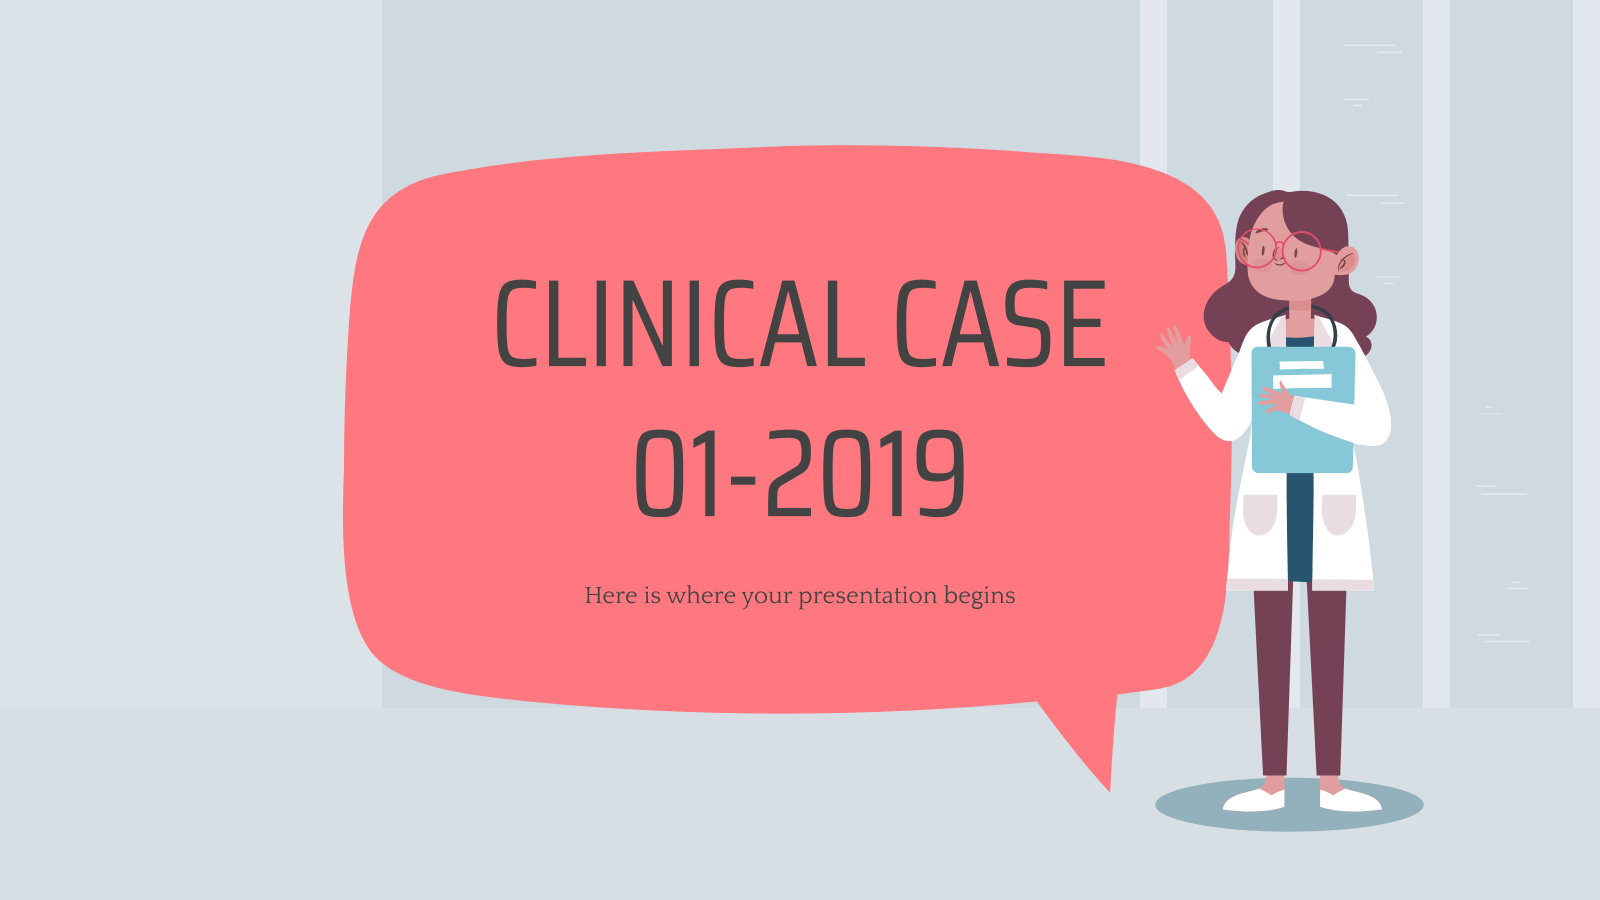 Clinical Case 01-2019 presentation template